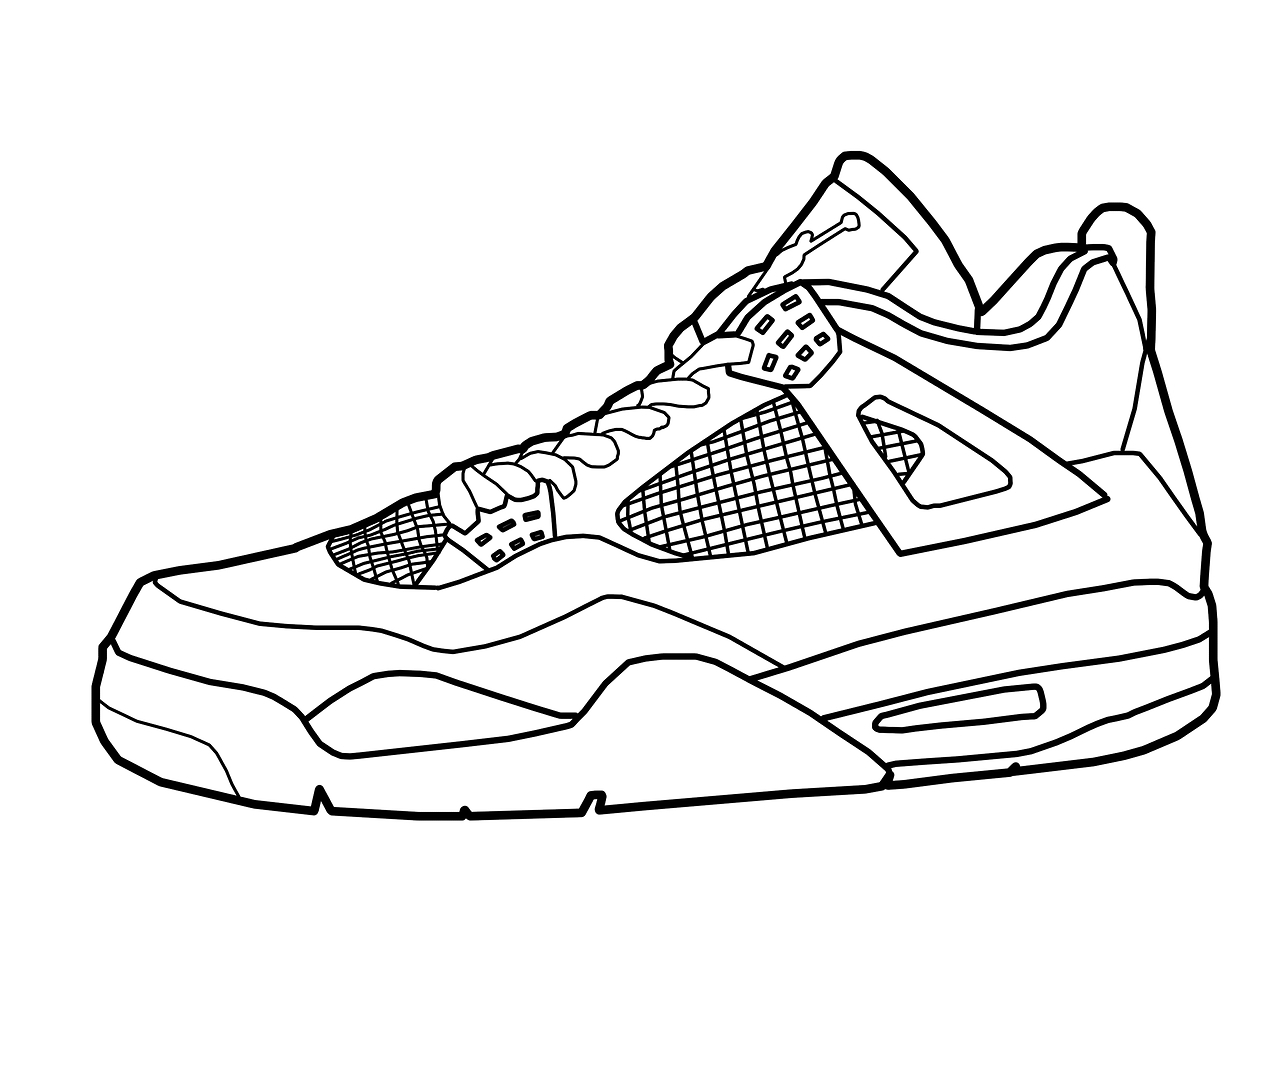 1280x1067 Drawing Of A Shoe Drawing Jordans Shoes Coloring Pages And Shoe